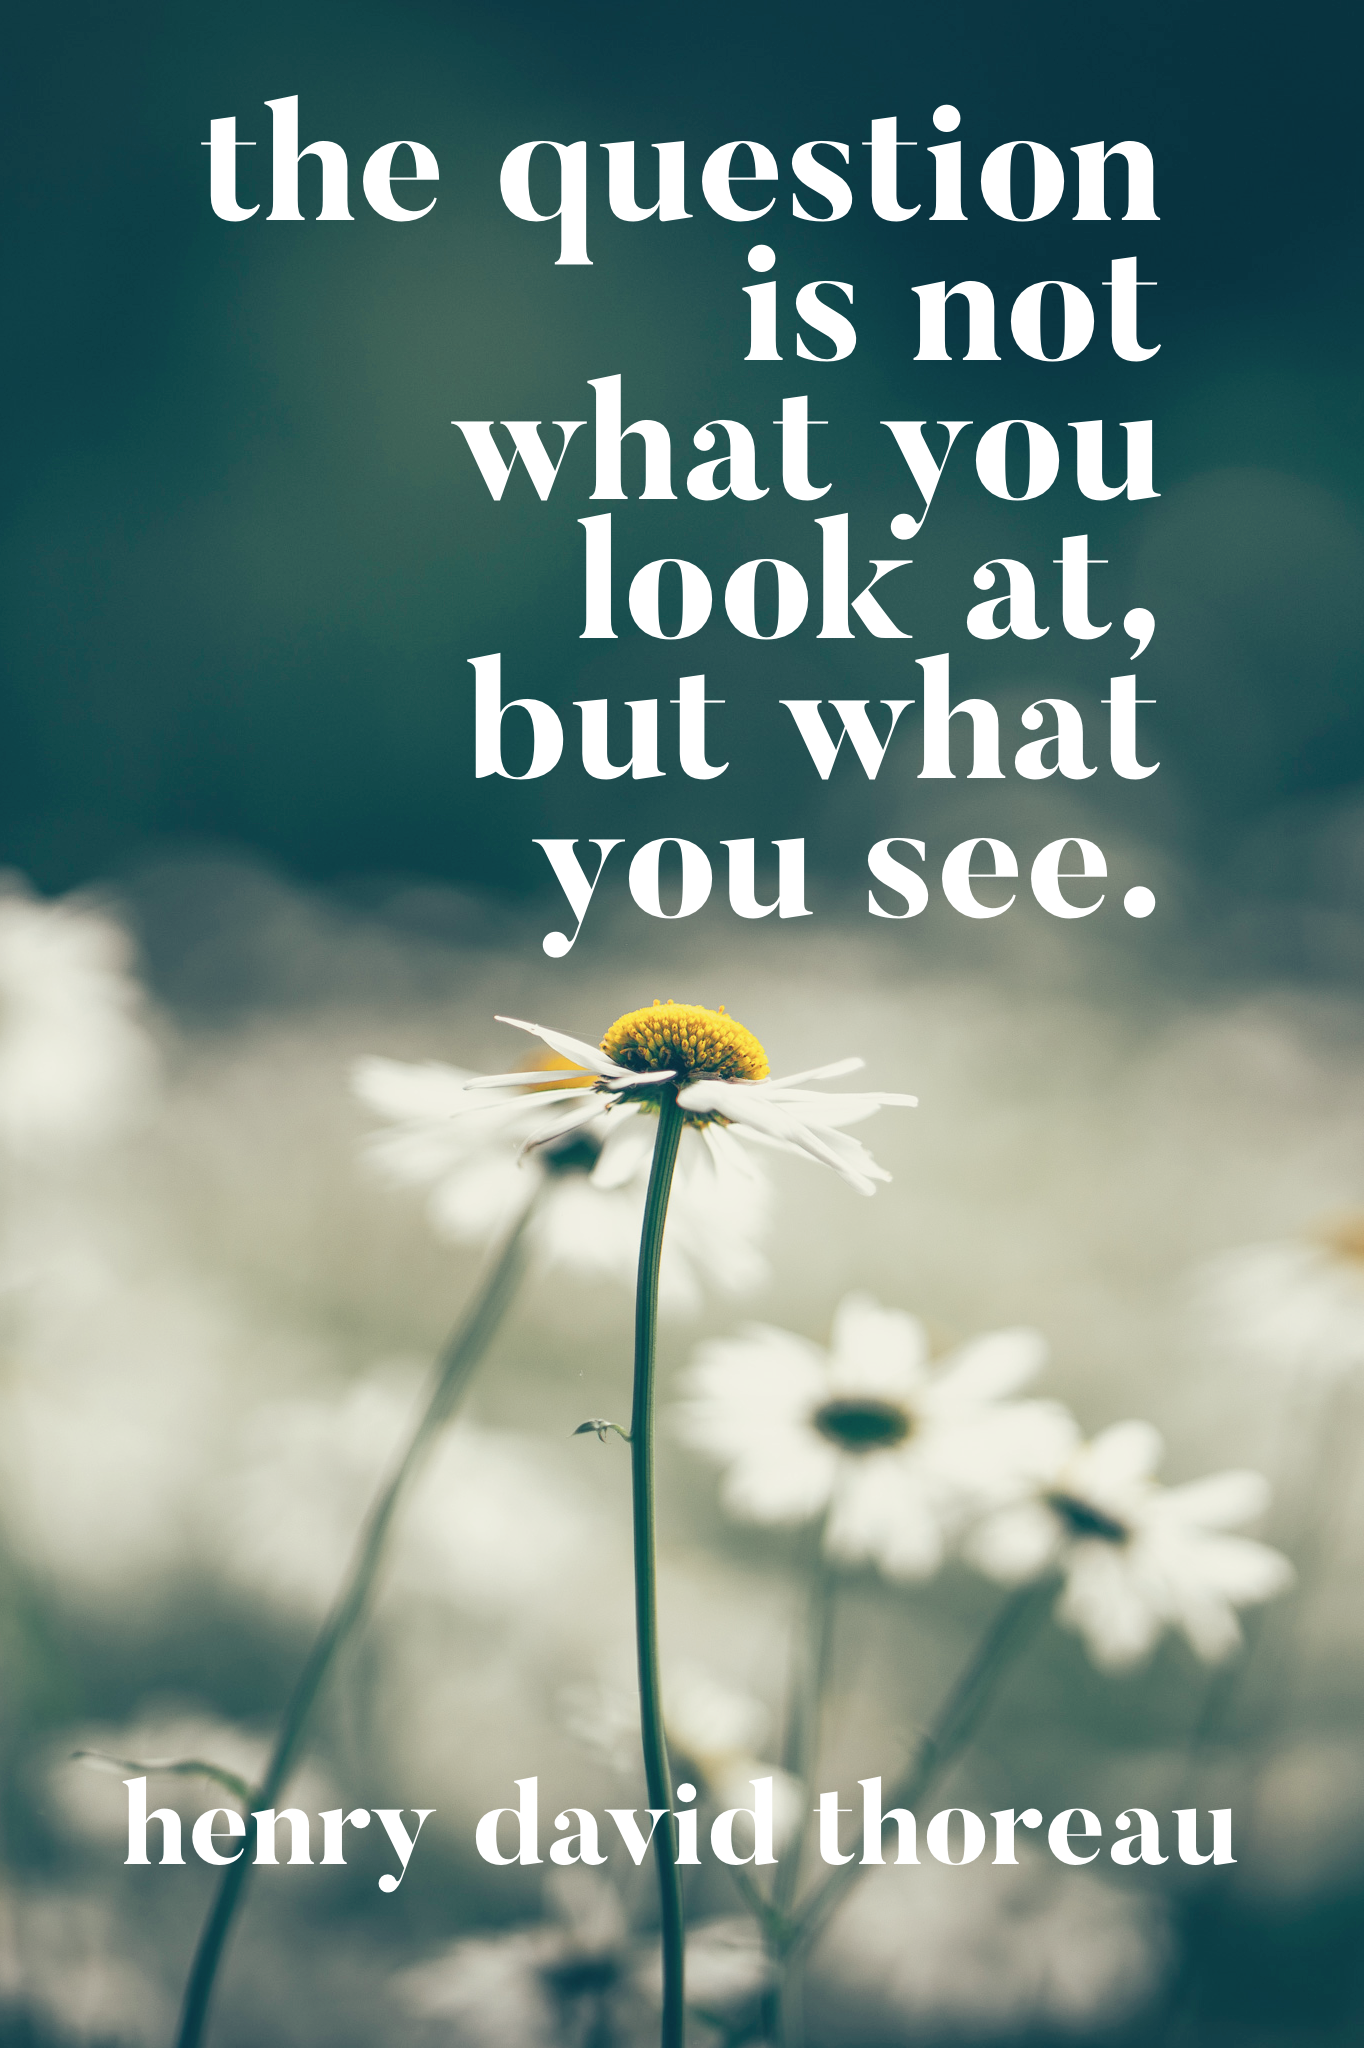 The question is not what you look at, but what you see | Henry David Thoreau